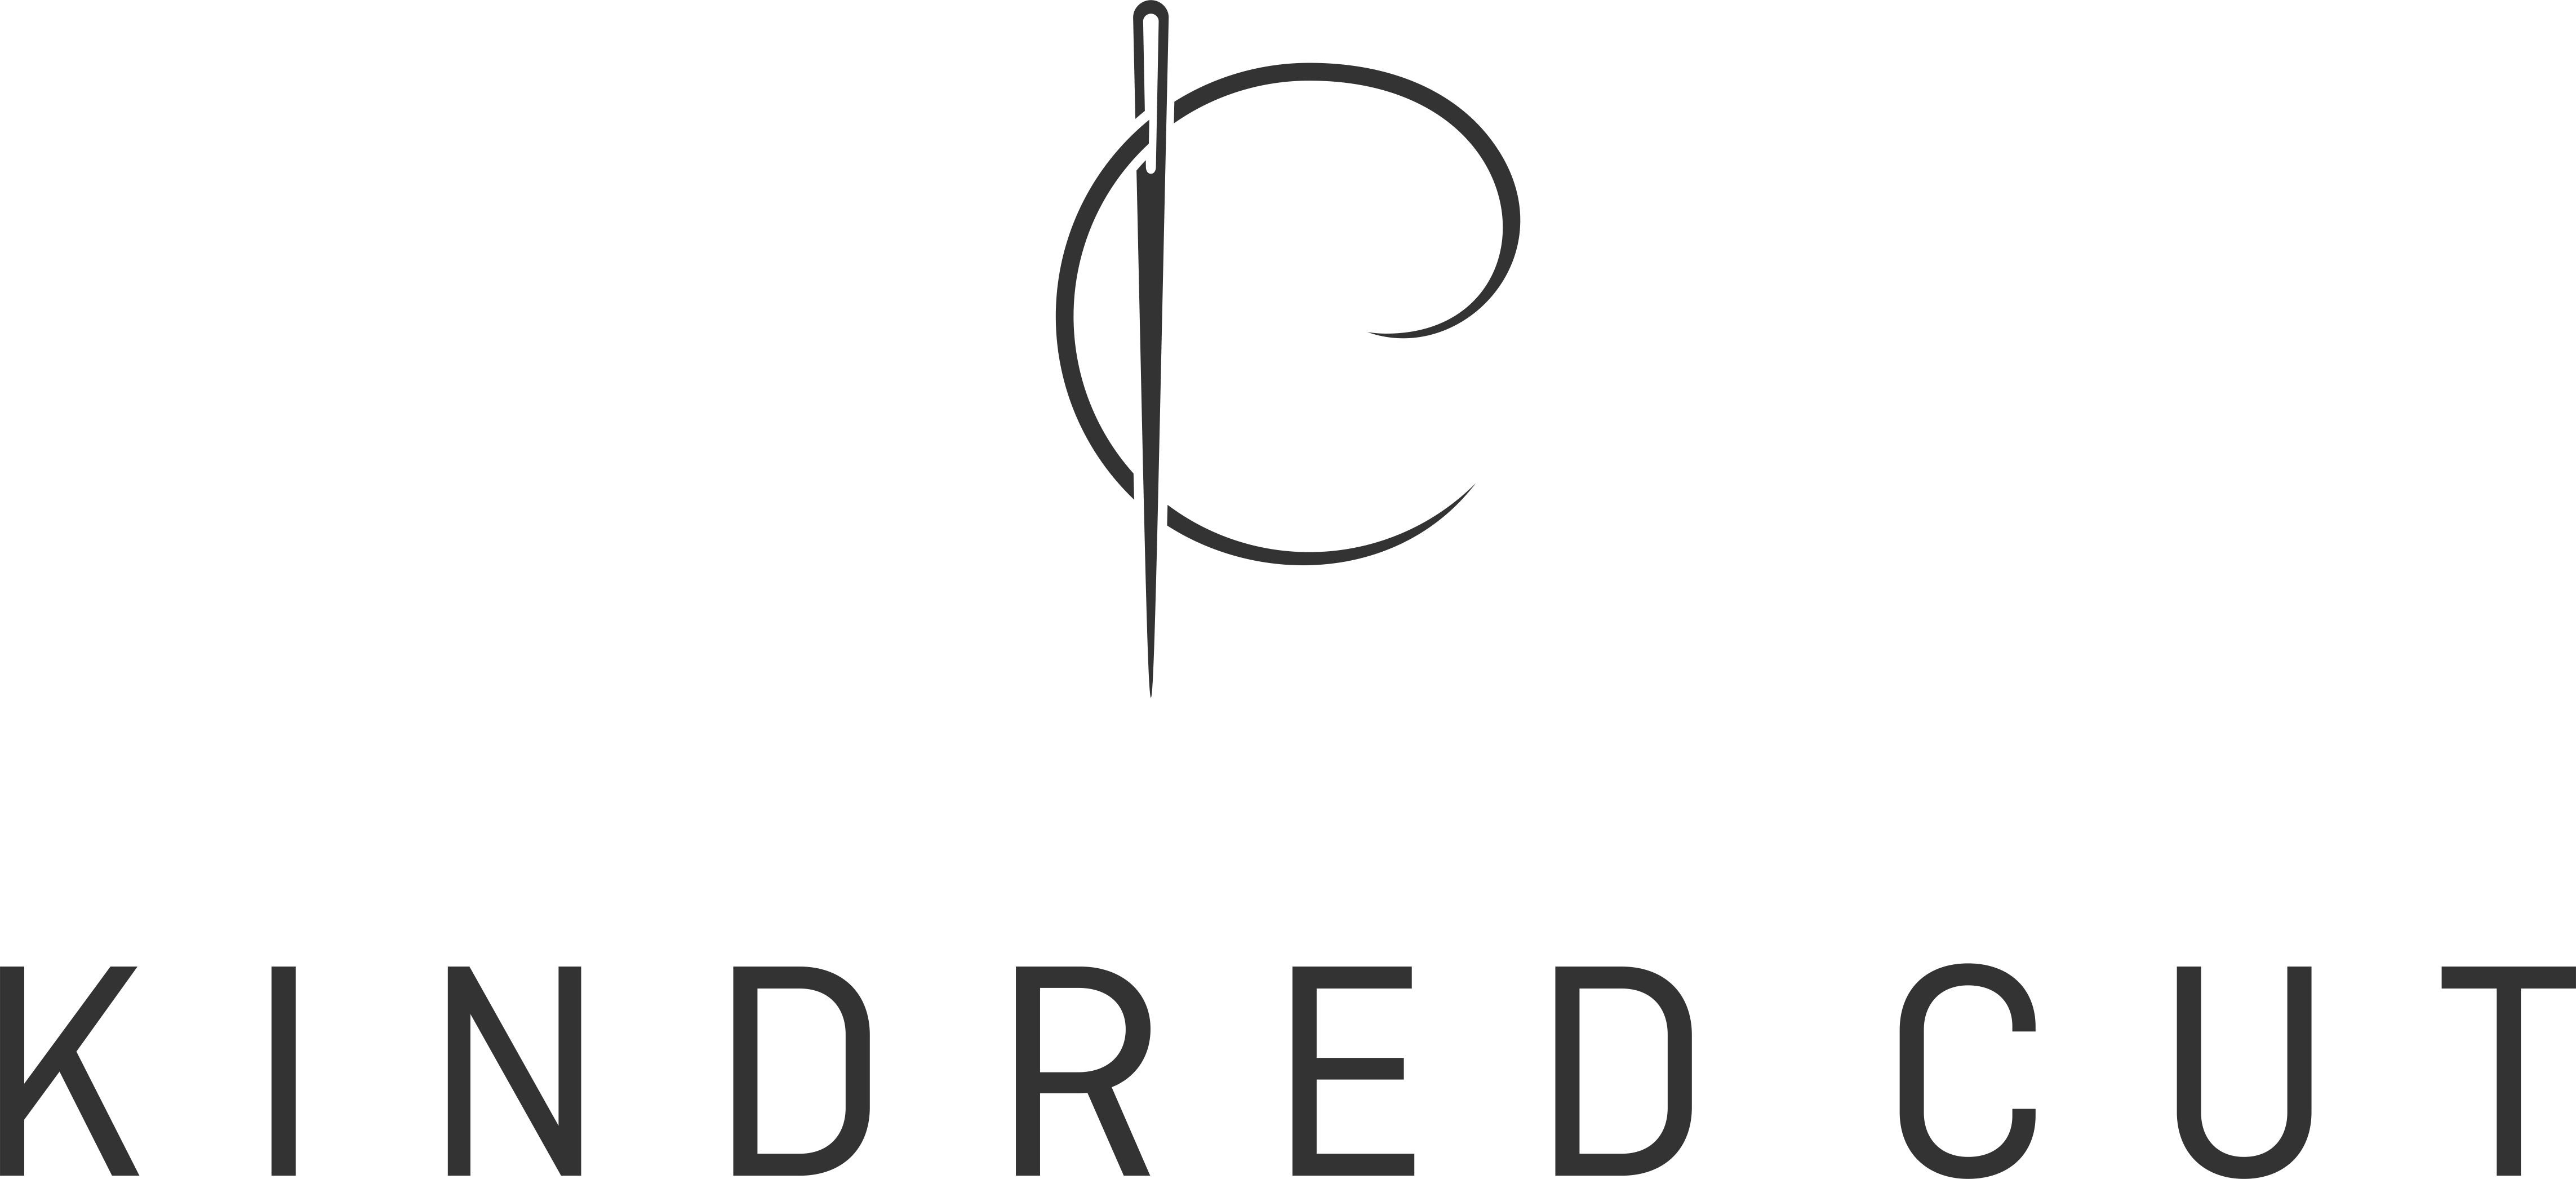 Create a high-end fashion identity for Kindred Cut